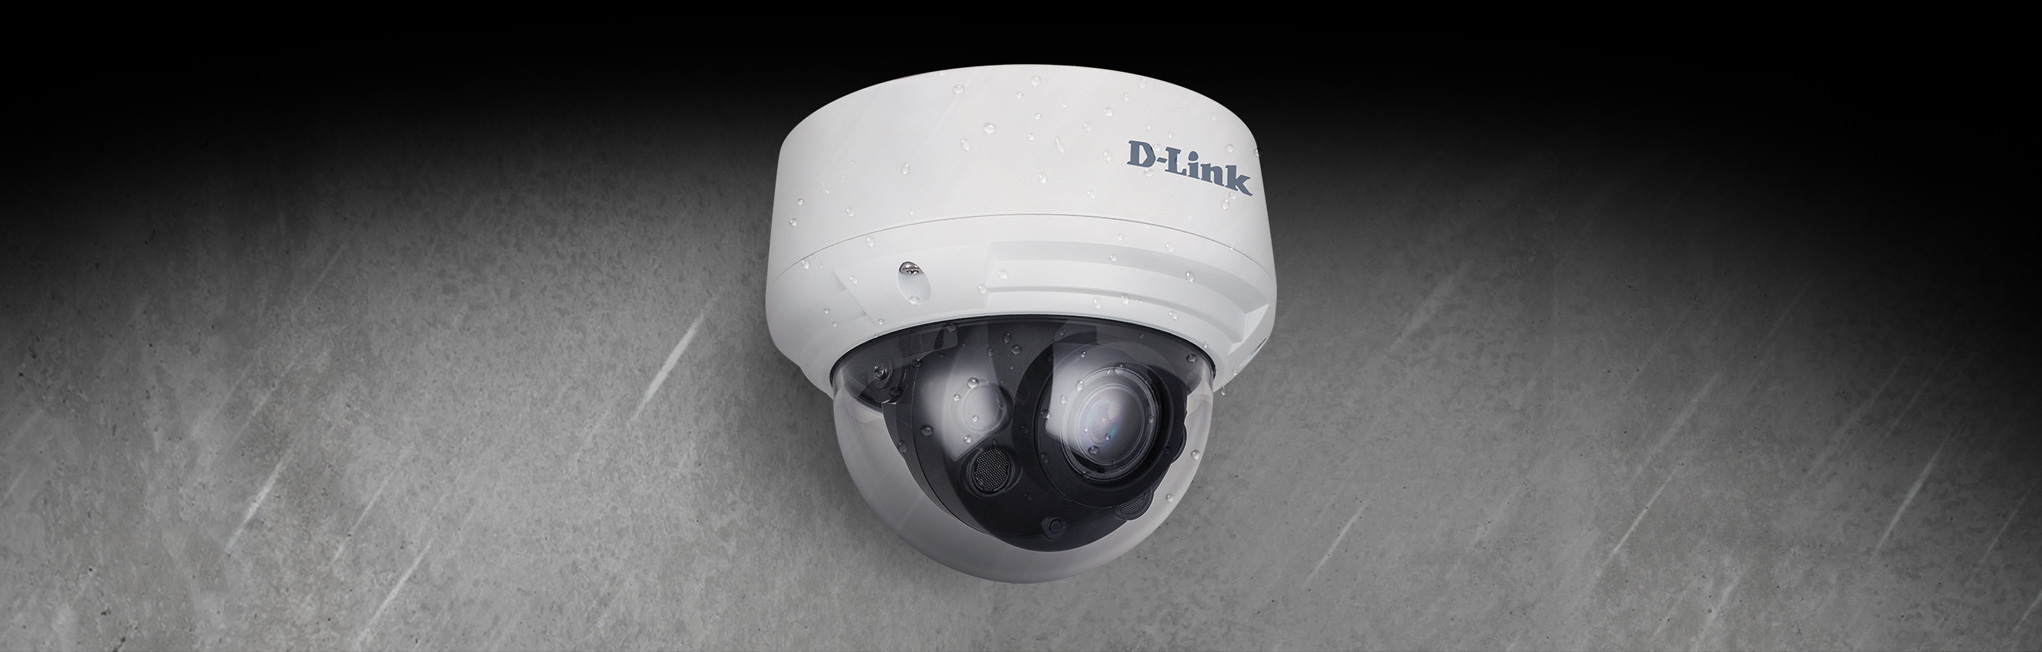 DCS-4618EK 8 Megapixel H.265 Outdoor Dome Camera - mounted outside in the rain.